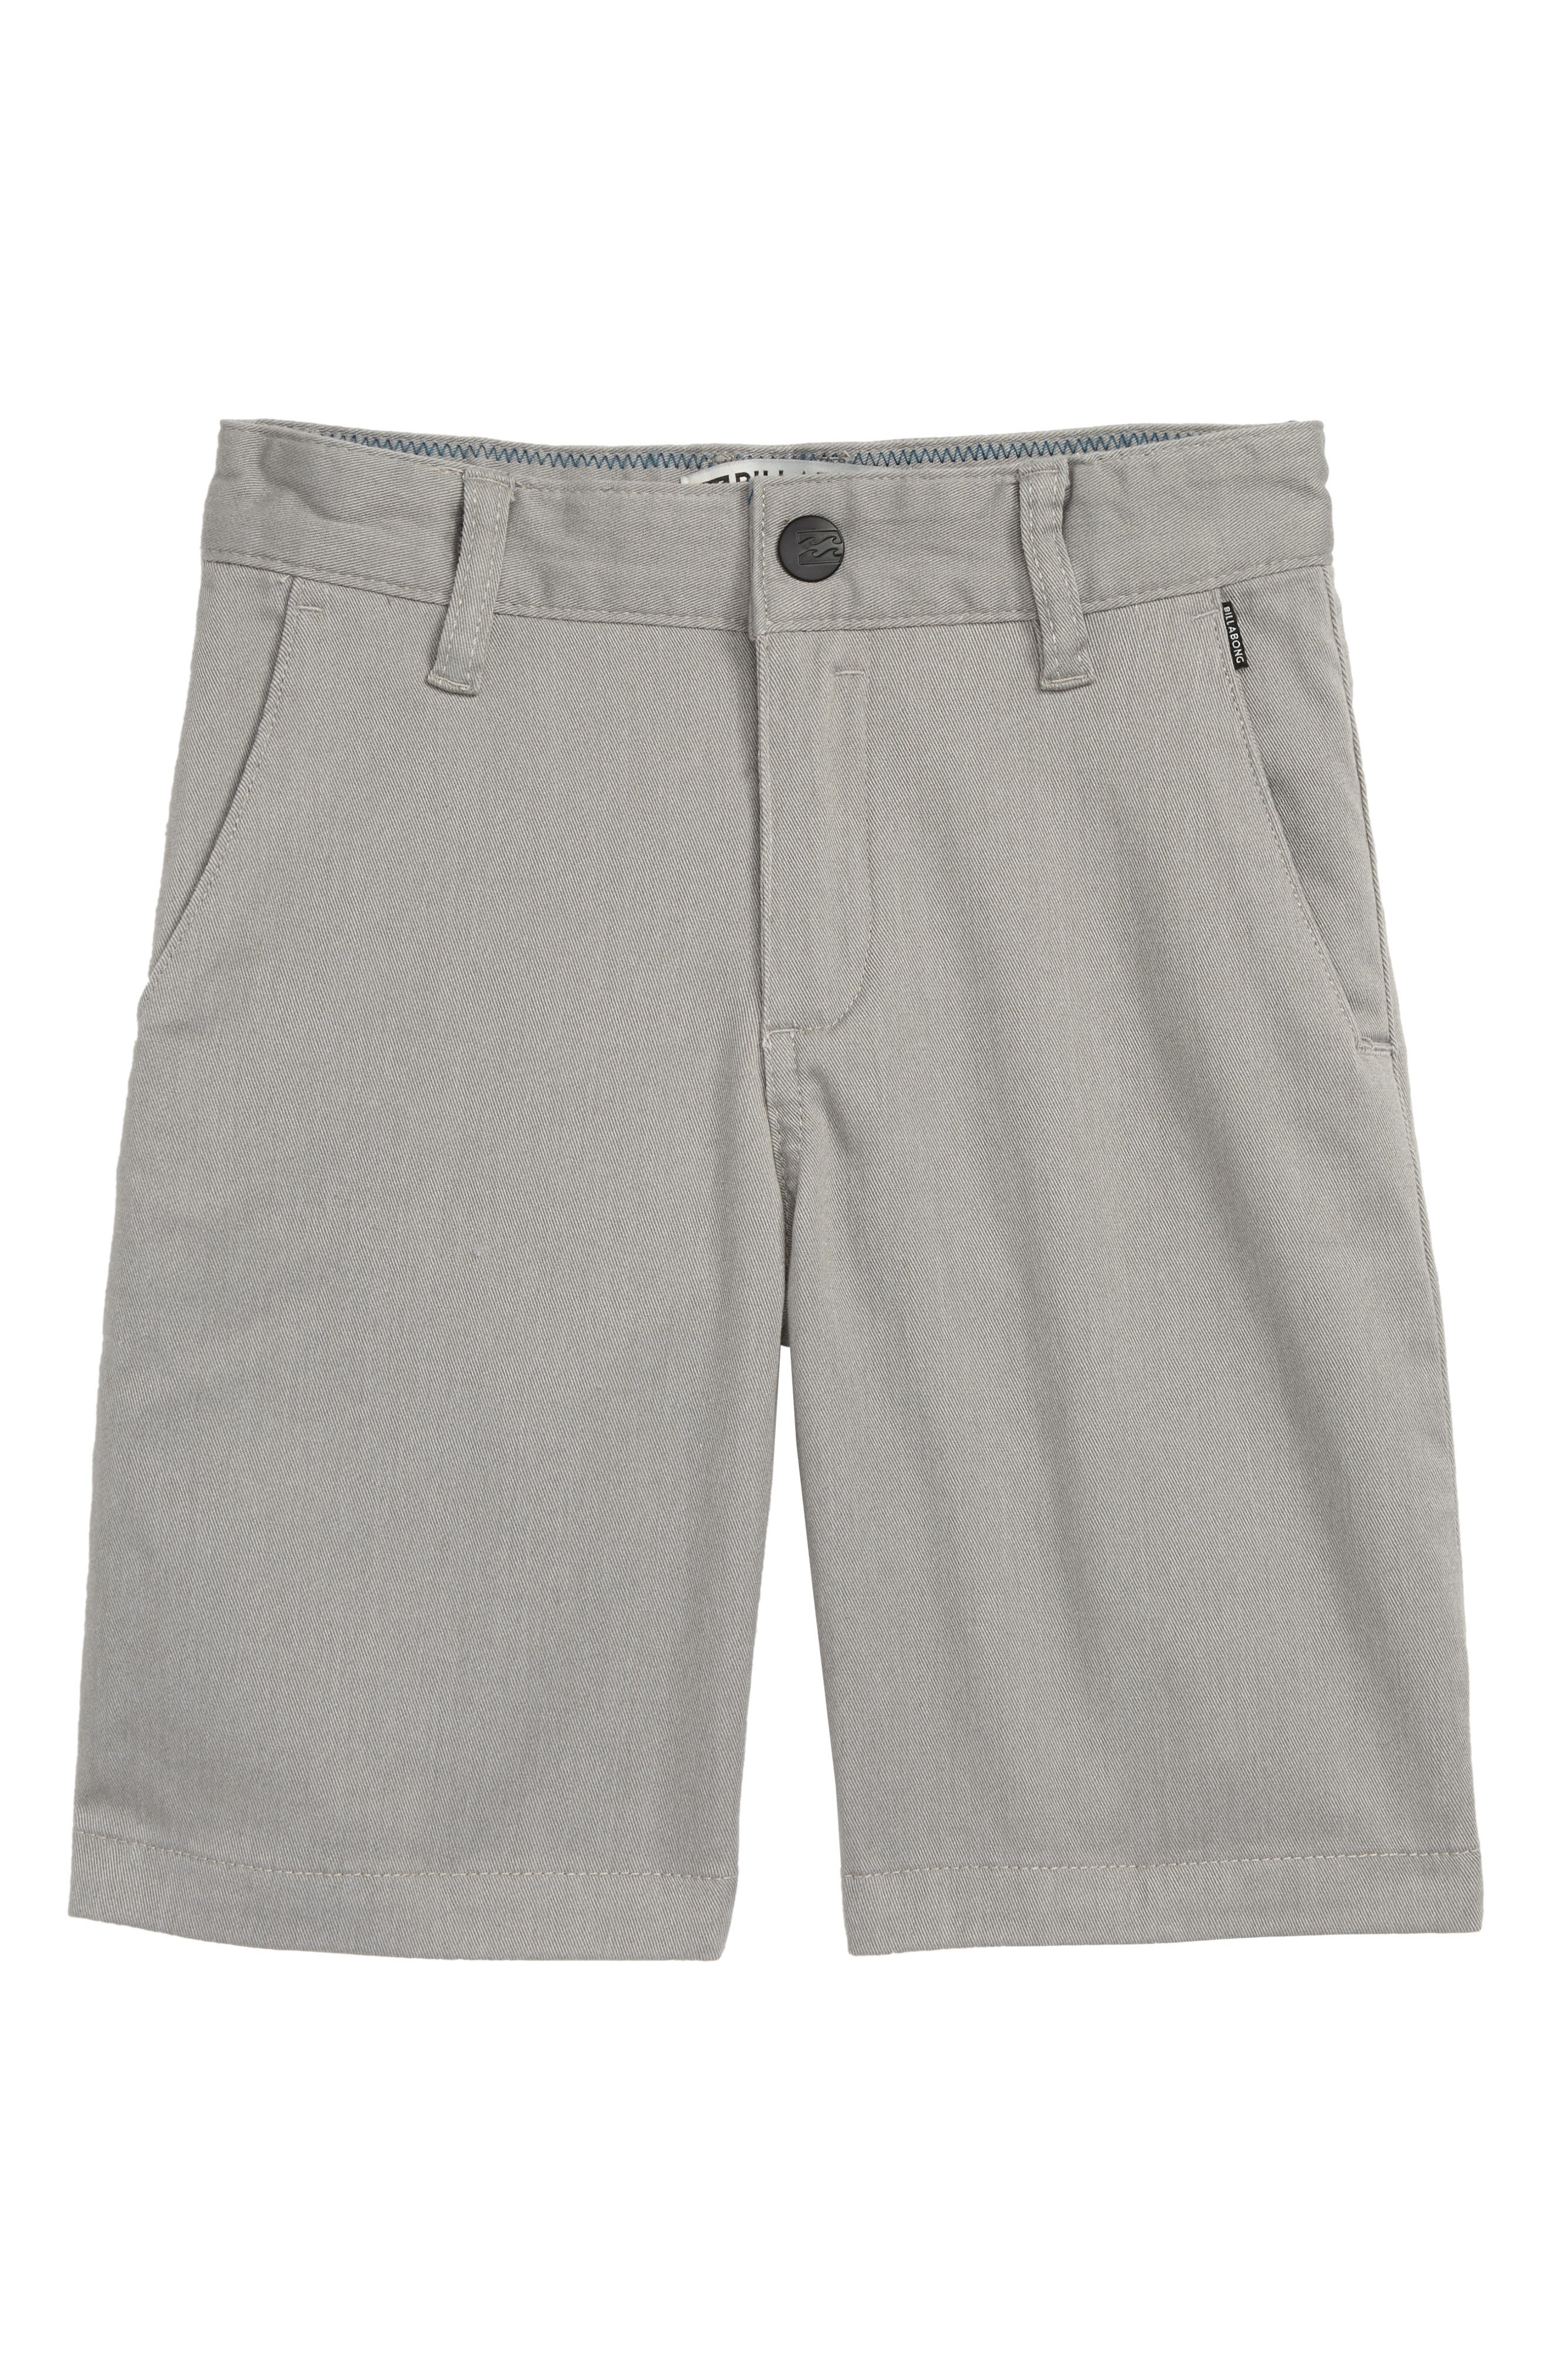 Carter Stretch Shorts,                         Main,                         color, Grey Heather